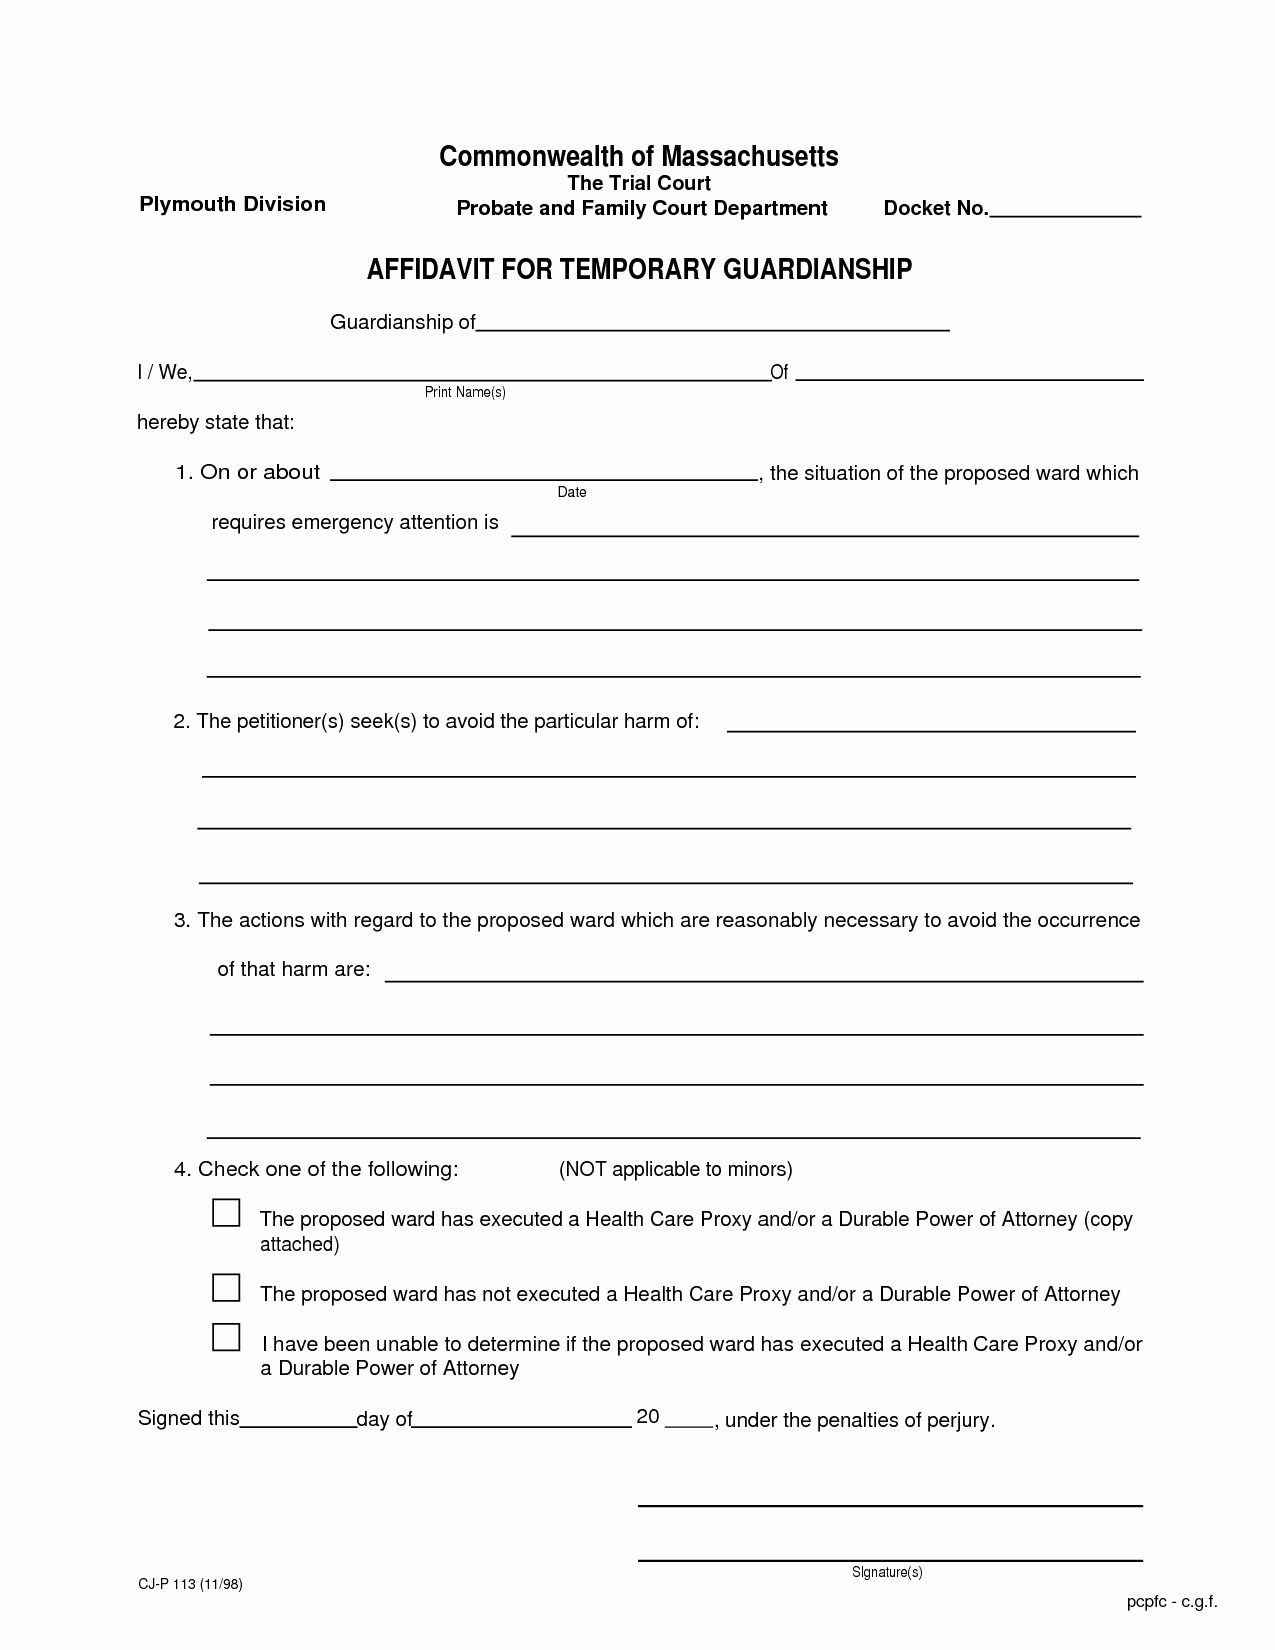 Free Temporary Guardianship form Unique Legal Temporary Child Custody Agreement form Id